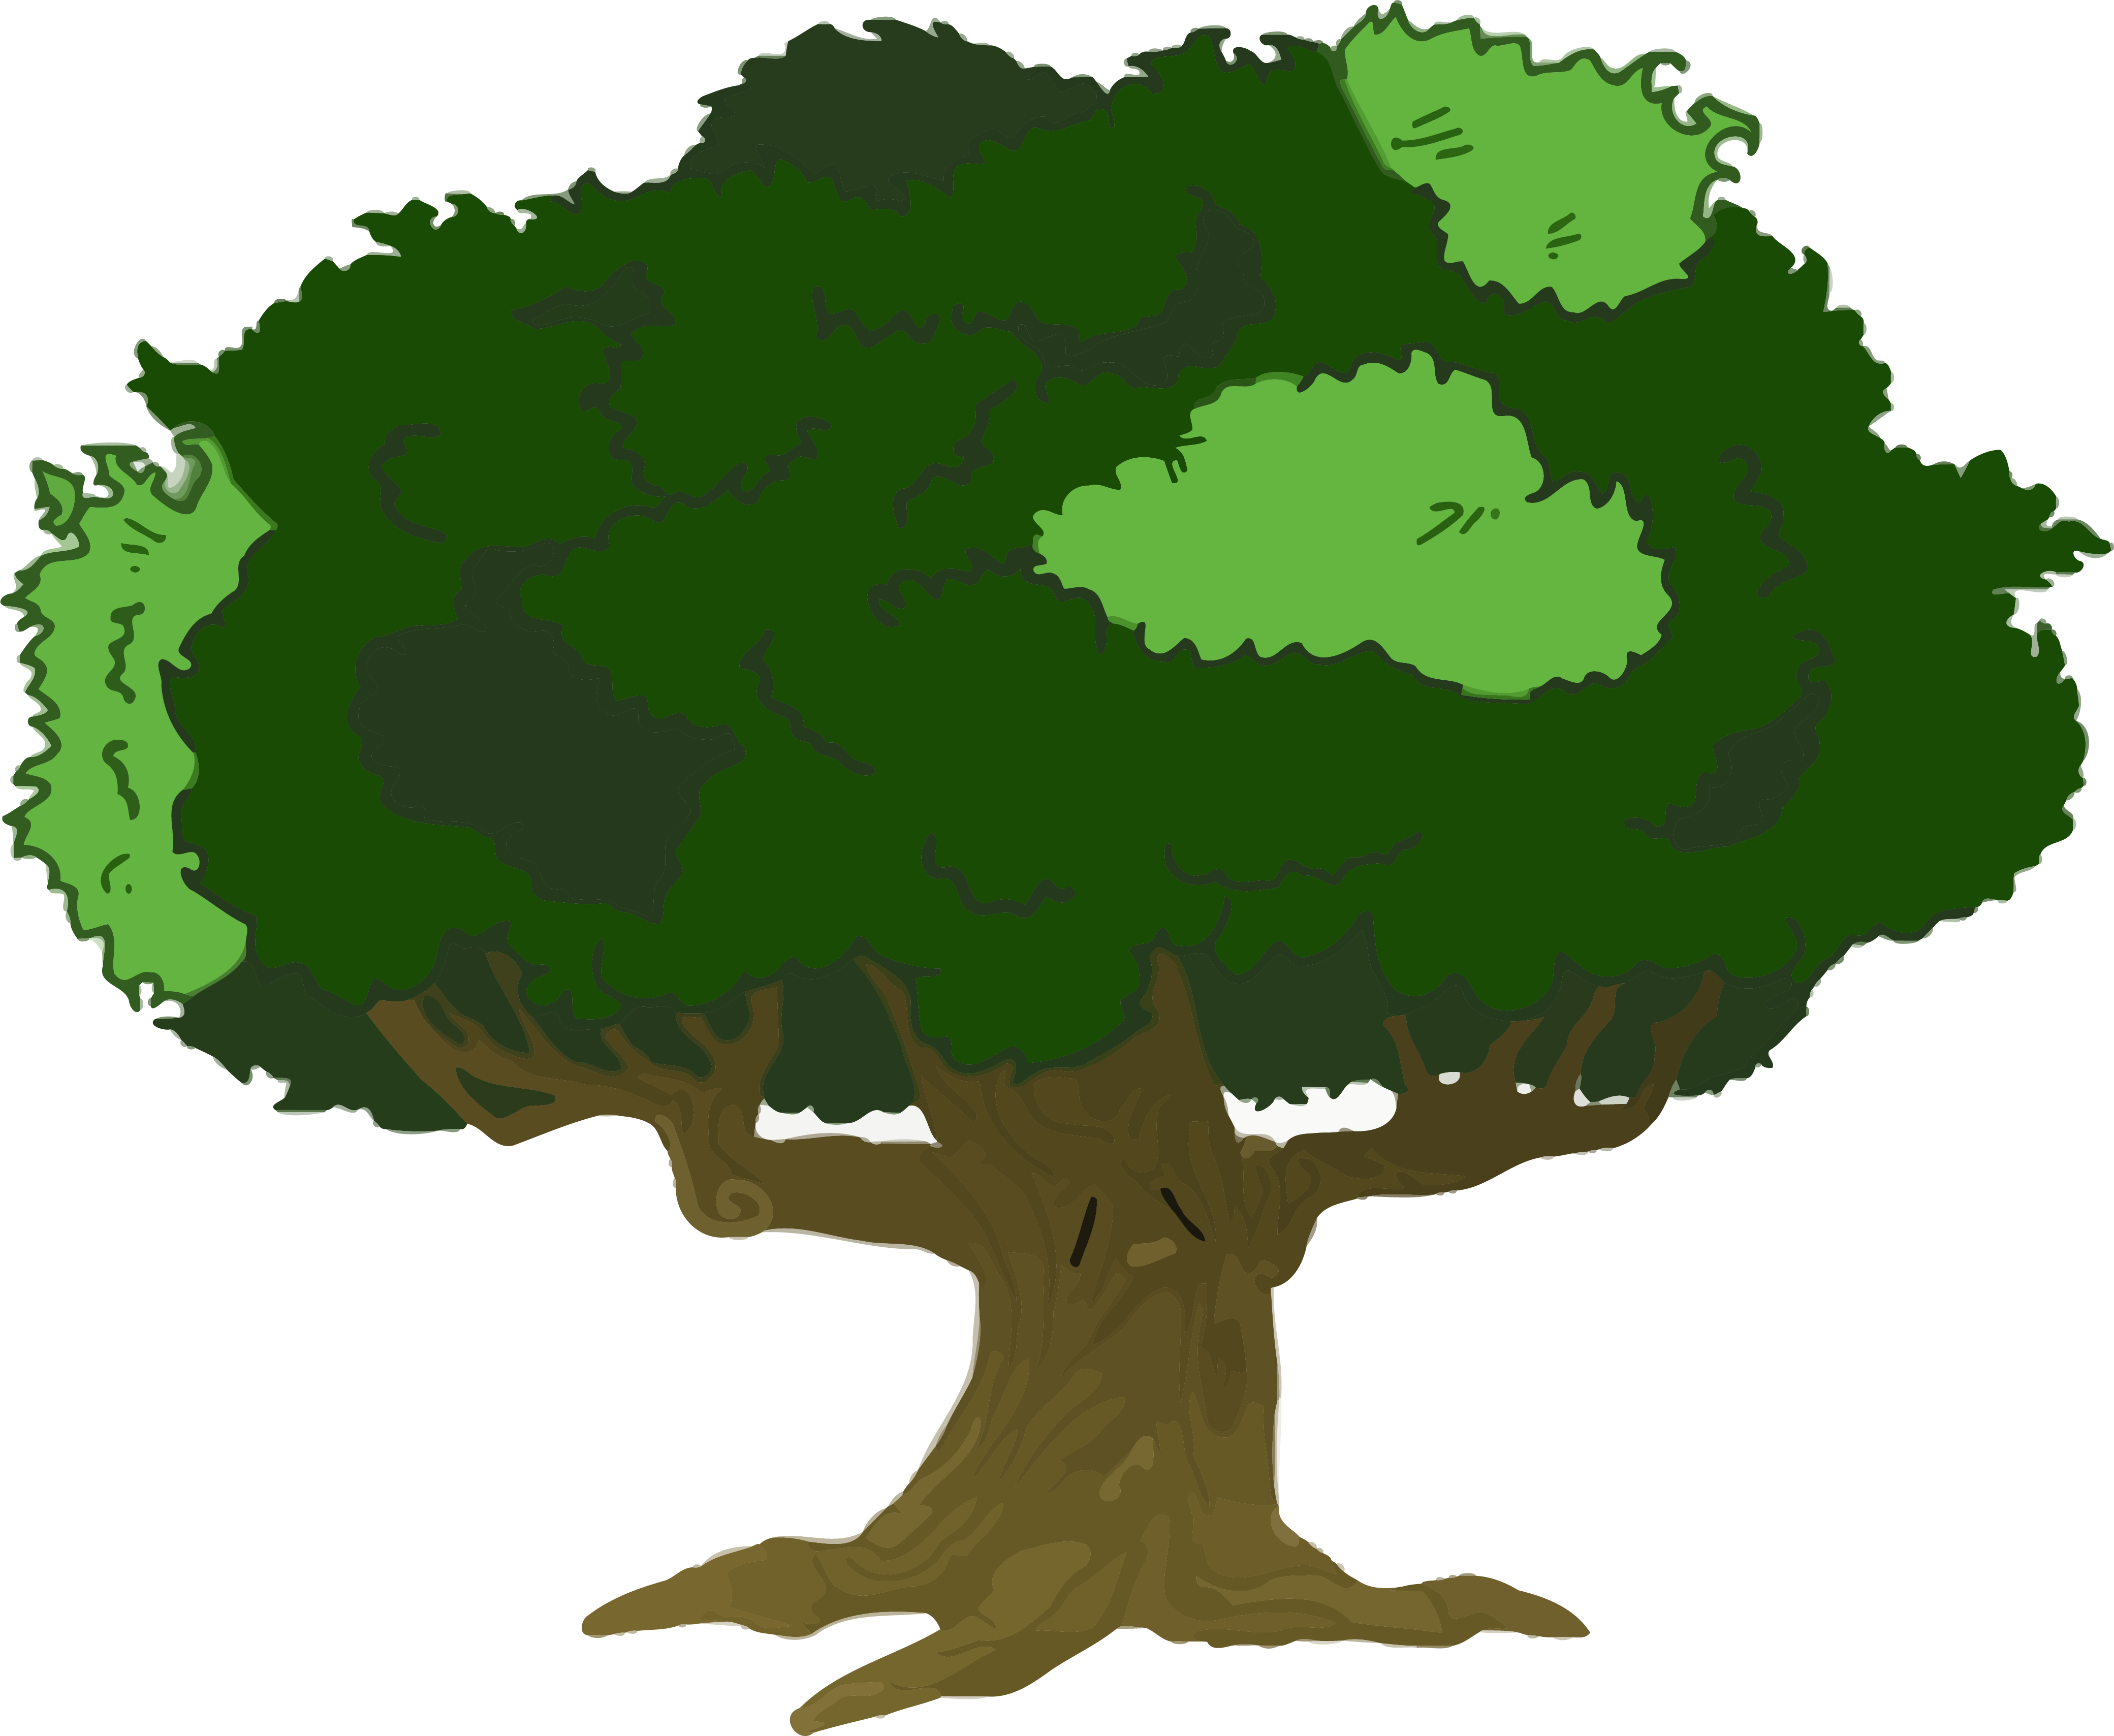 Royalty free tree clipart banner stock Tree Image Clip Art Online Royalty Free Clipart Png - Clipartly ... banner stock